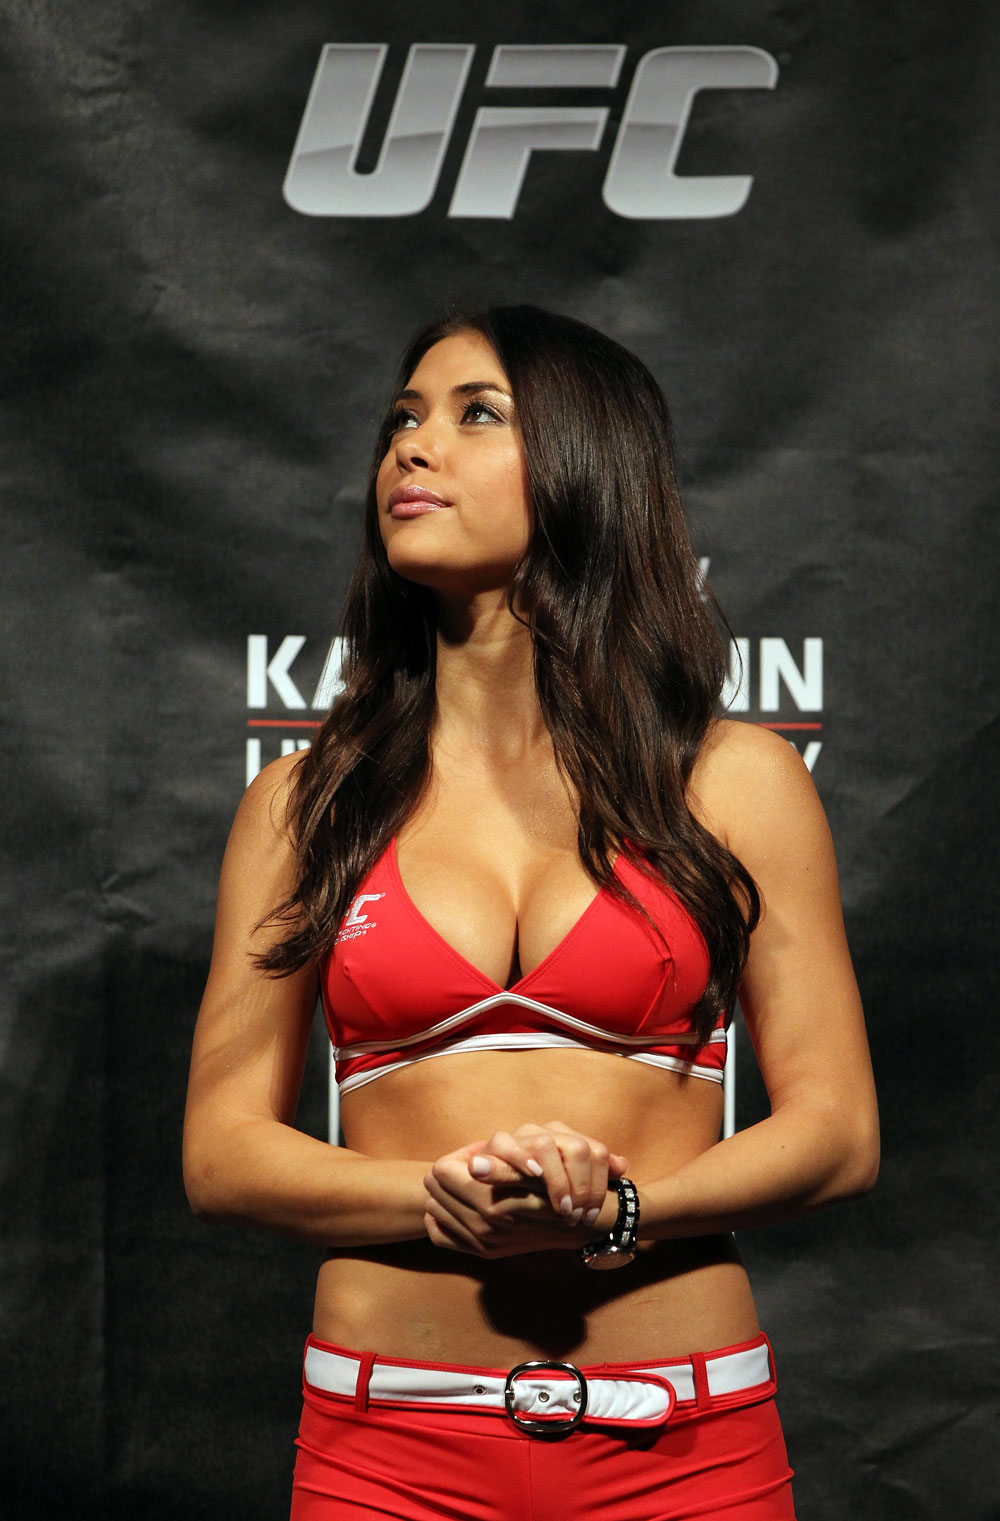 SYDNEY, AUSTRALIA - MARCH 02:  UFC Octagon Arianny Celeste attends the UFC on FX official weigh in at Allphones Arena on March 2, 2012 in Sydney, Australia.  (Photo by Josh Hedges/Zuffa LLC/Zuffa LLC via Getty Images) *** Local Caption *** Arianny Celeste